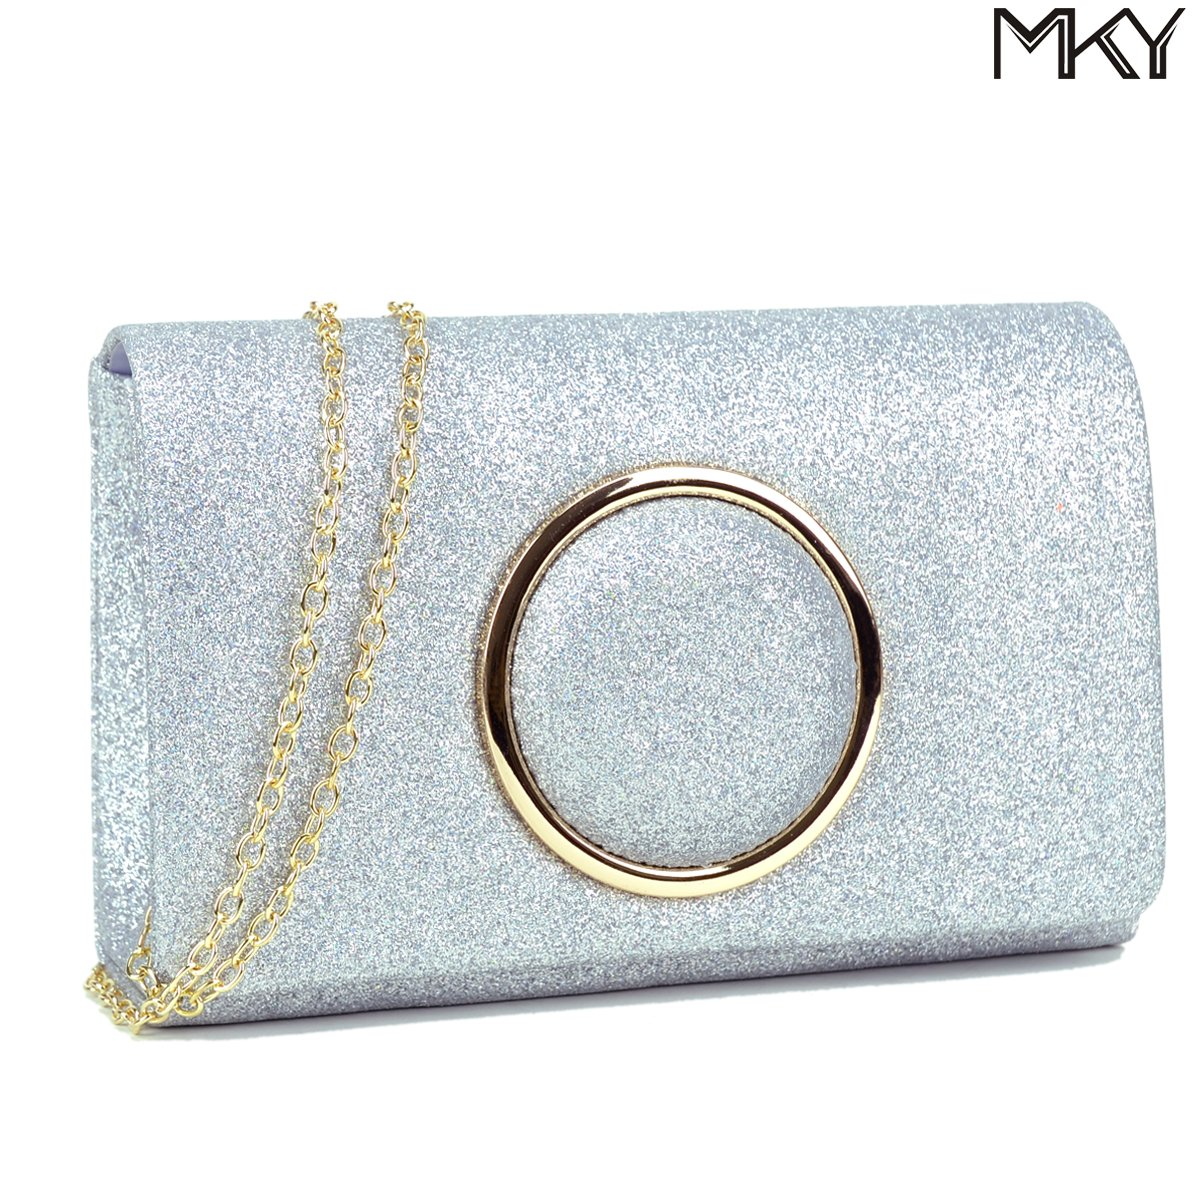 Women Glitter Sequin Clutch Purse Evening Bag Shiny Party Handbag Silver by MKY